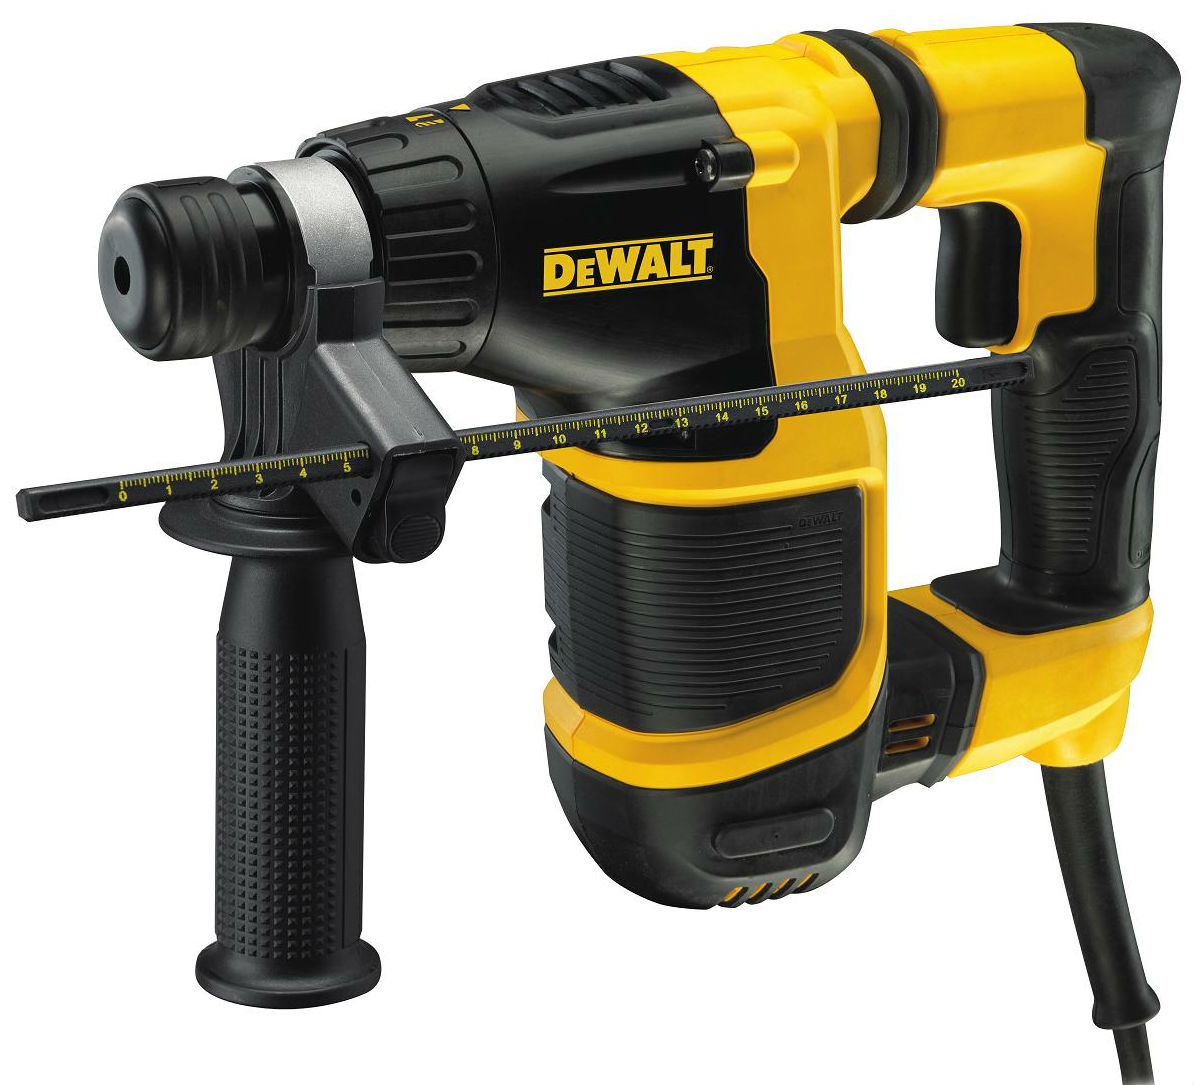 dewalt 3 4 corded sds rotary hammer drill ebay. Black Bedroom Furniture Sets. Home Design Ideas